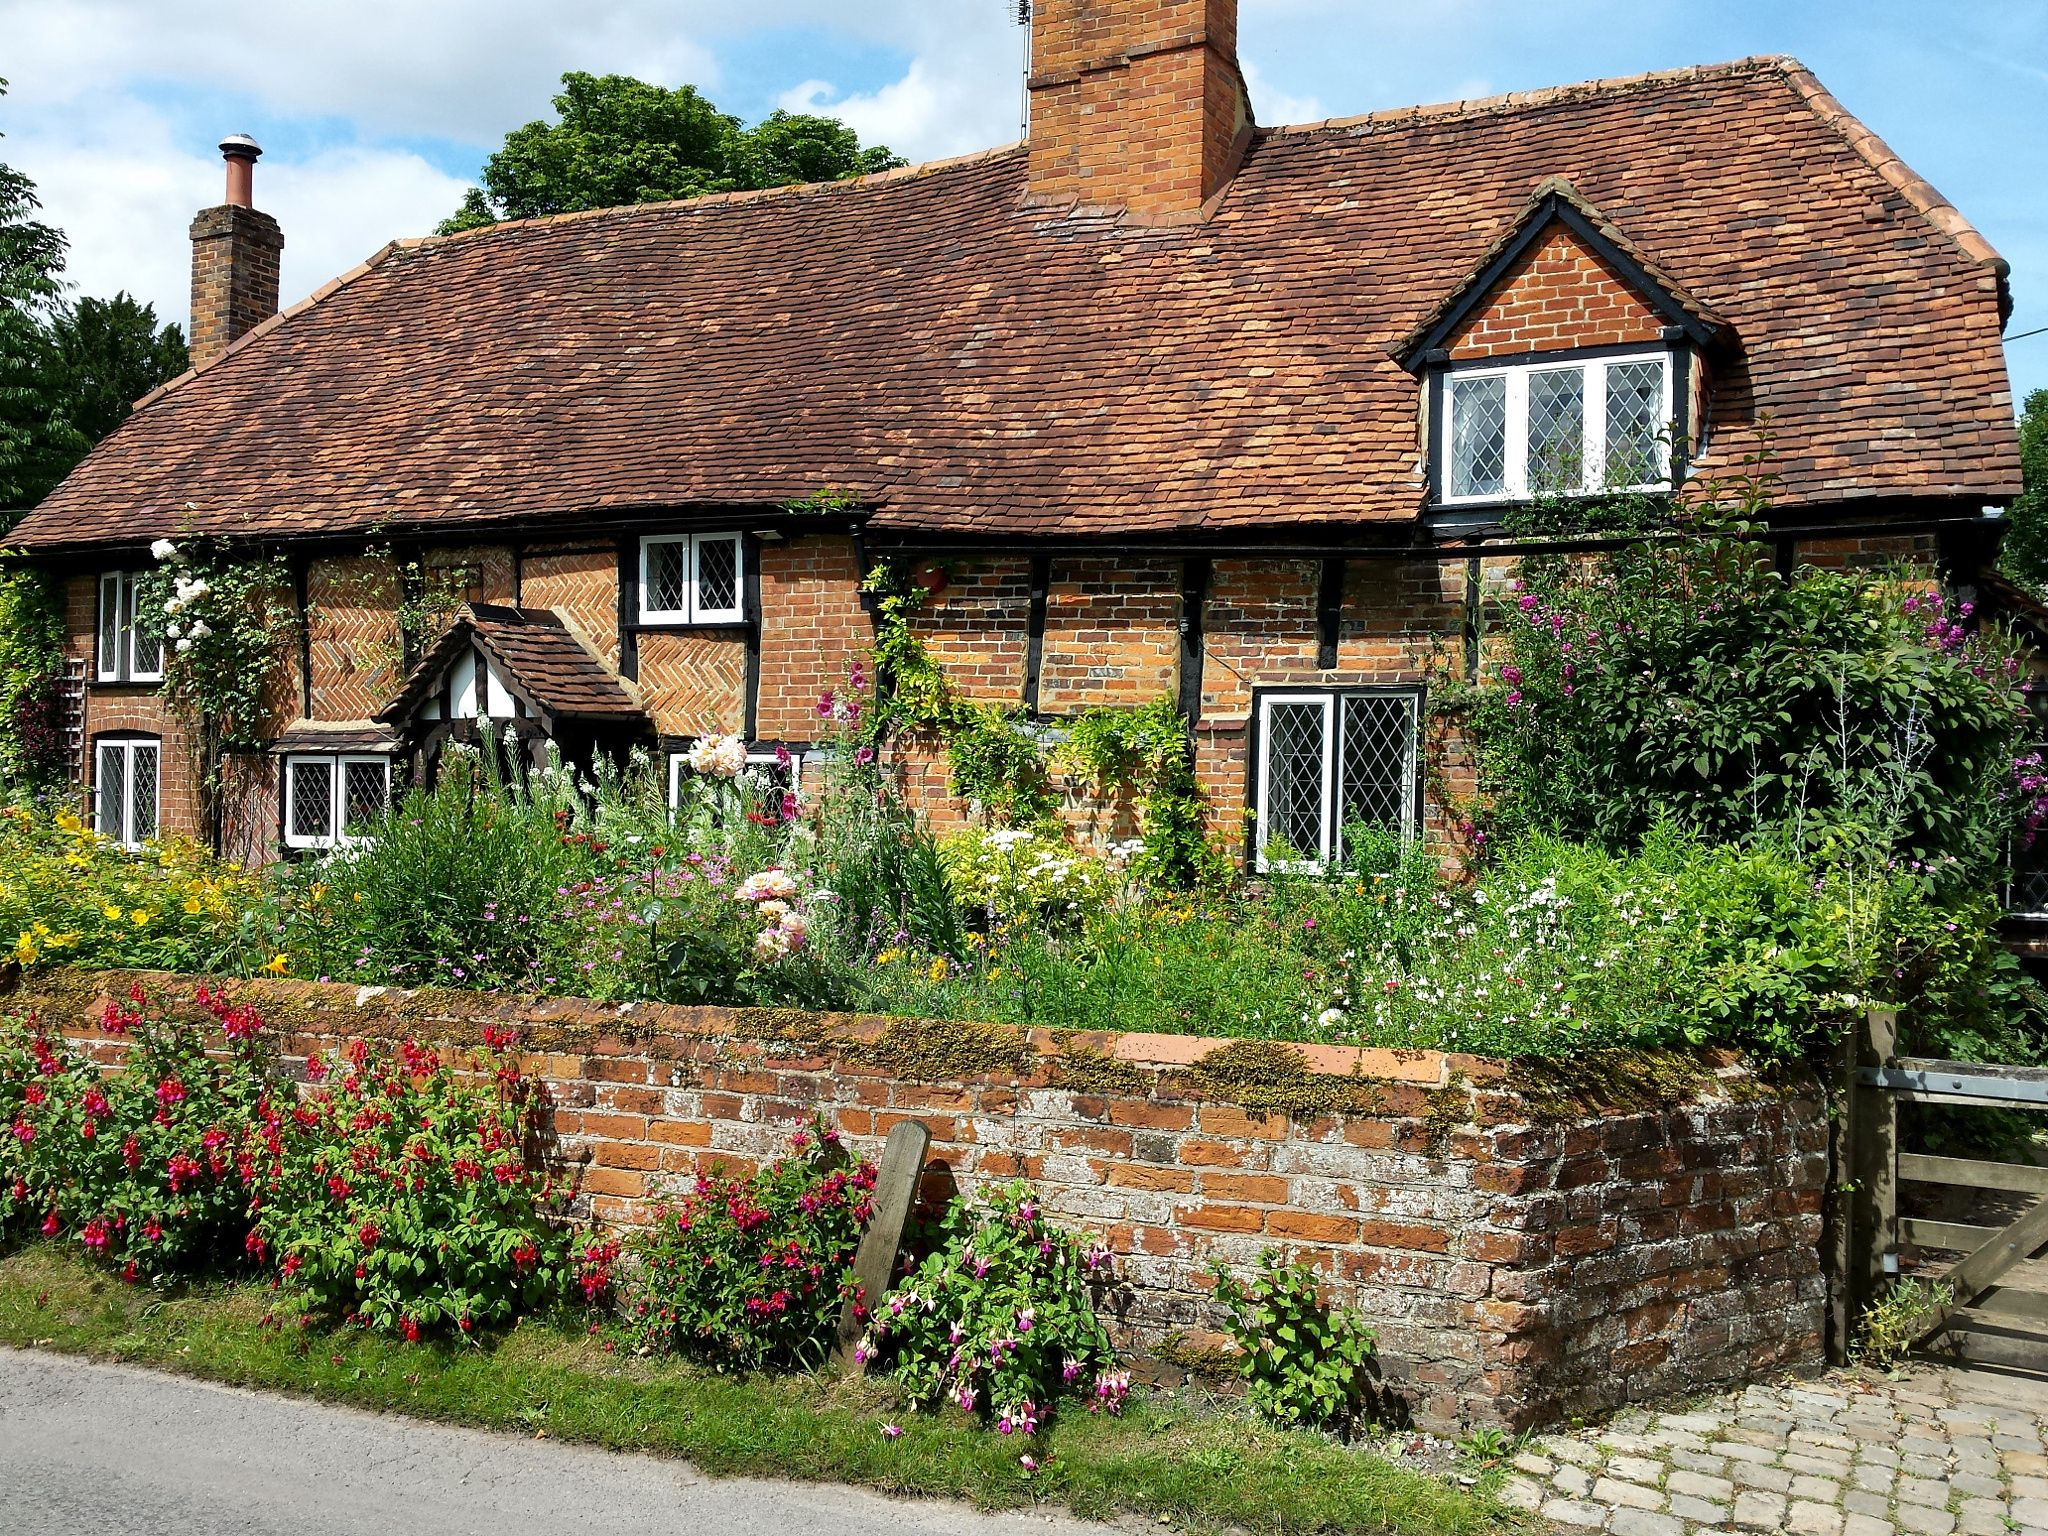 English country house and cottage garden. - null | art | Pinterest ...